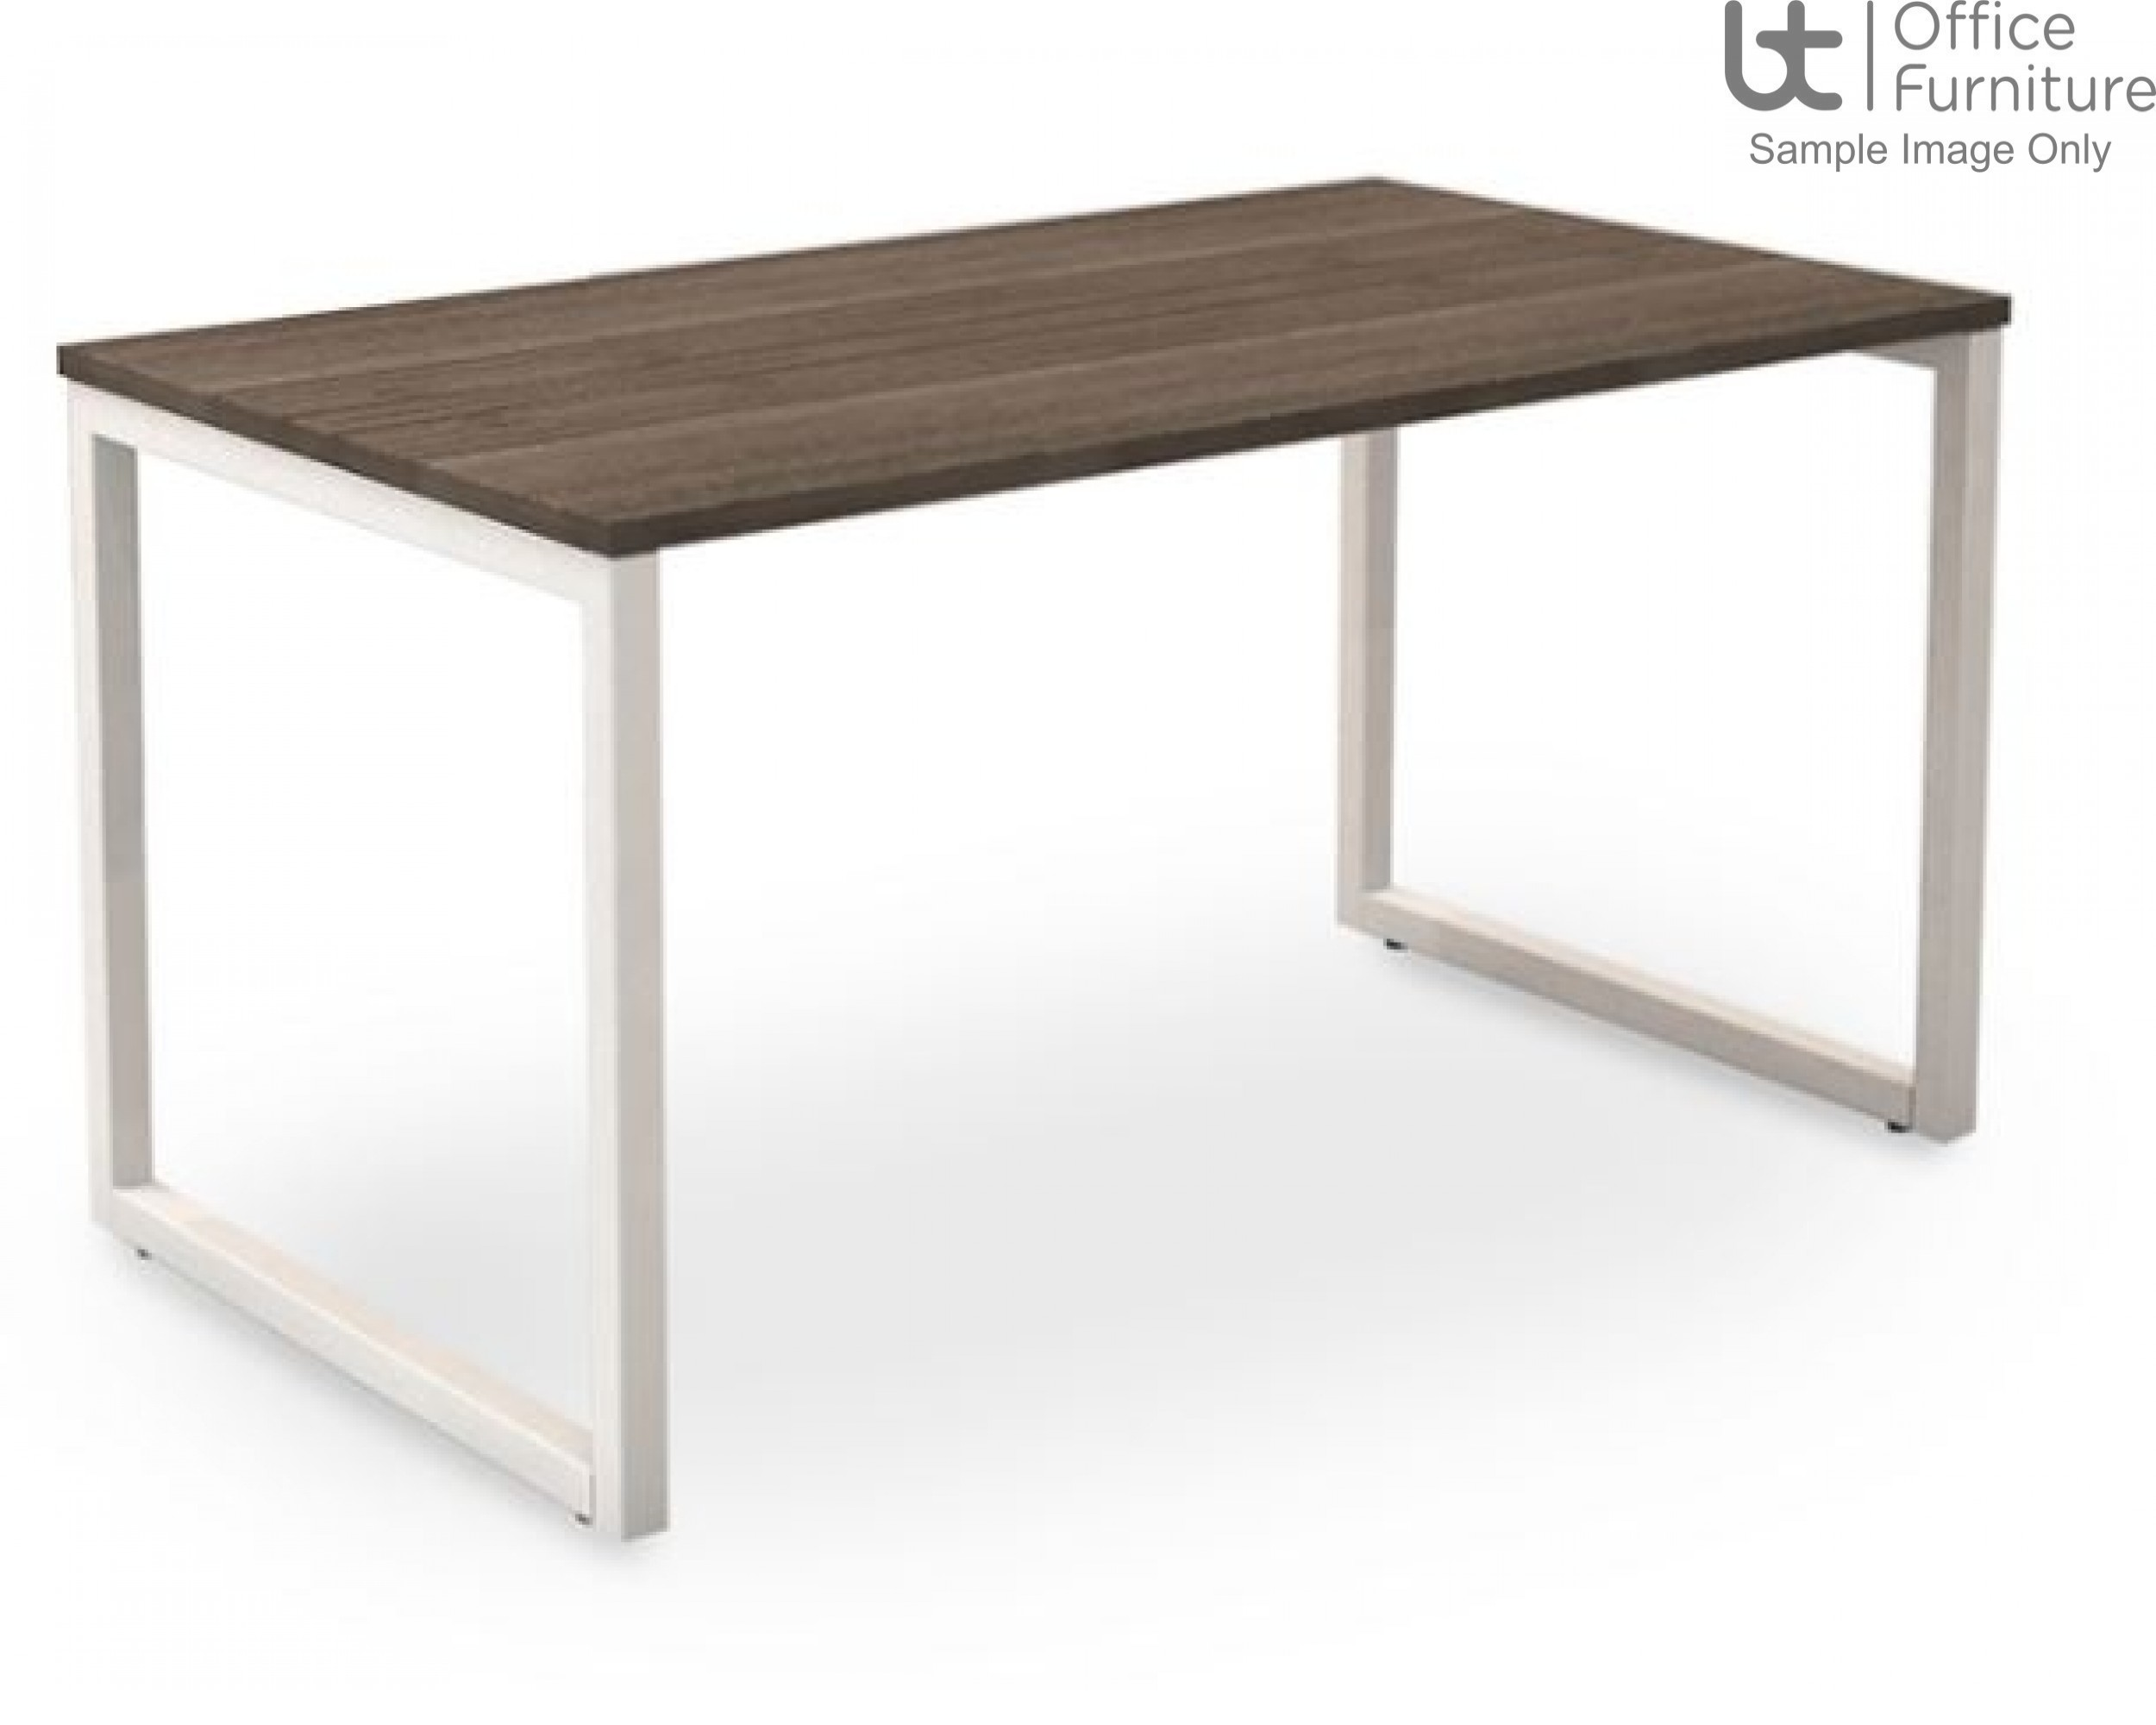 Robust Block Steel Frame Bench Dining Table W2000 x D800 x H740mm